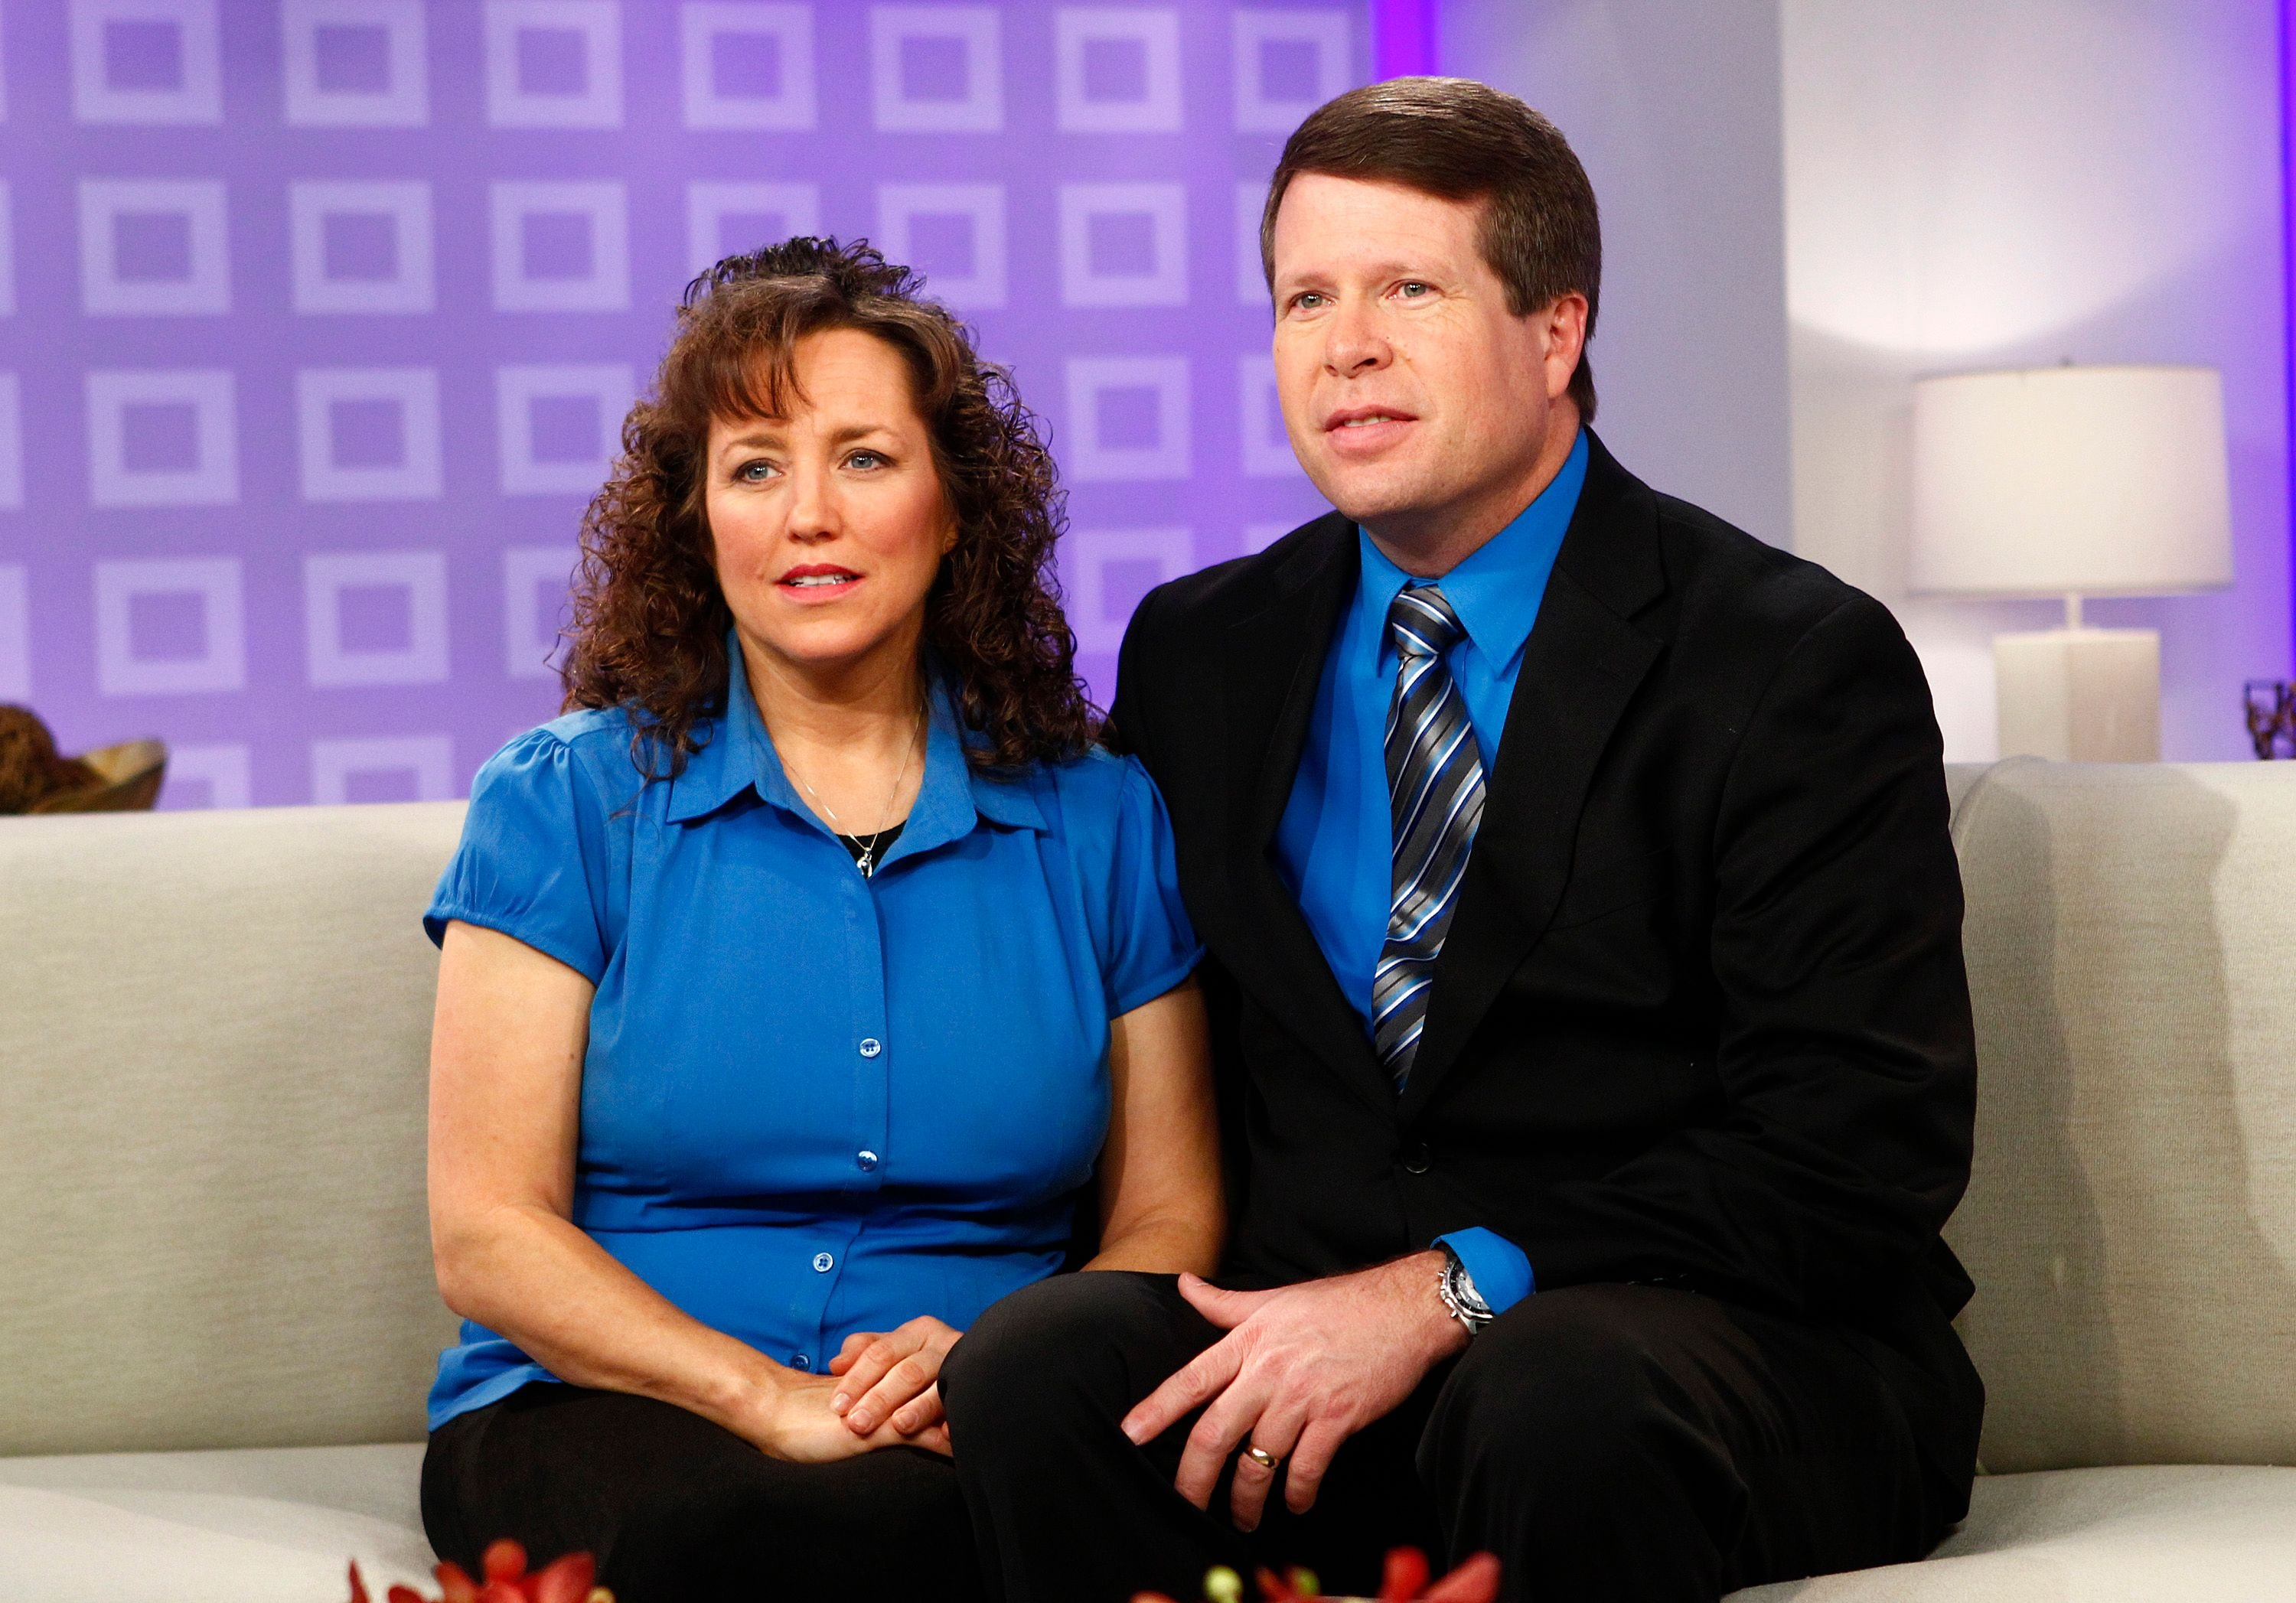 """Michelle and Jim Bob Duggar appear on the """"Today"""" show. Image created on February 14, 2012 